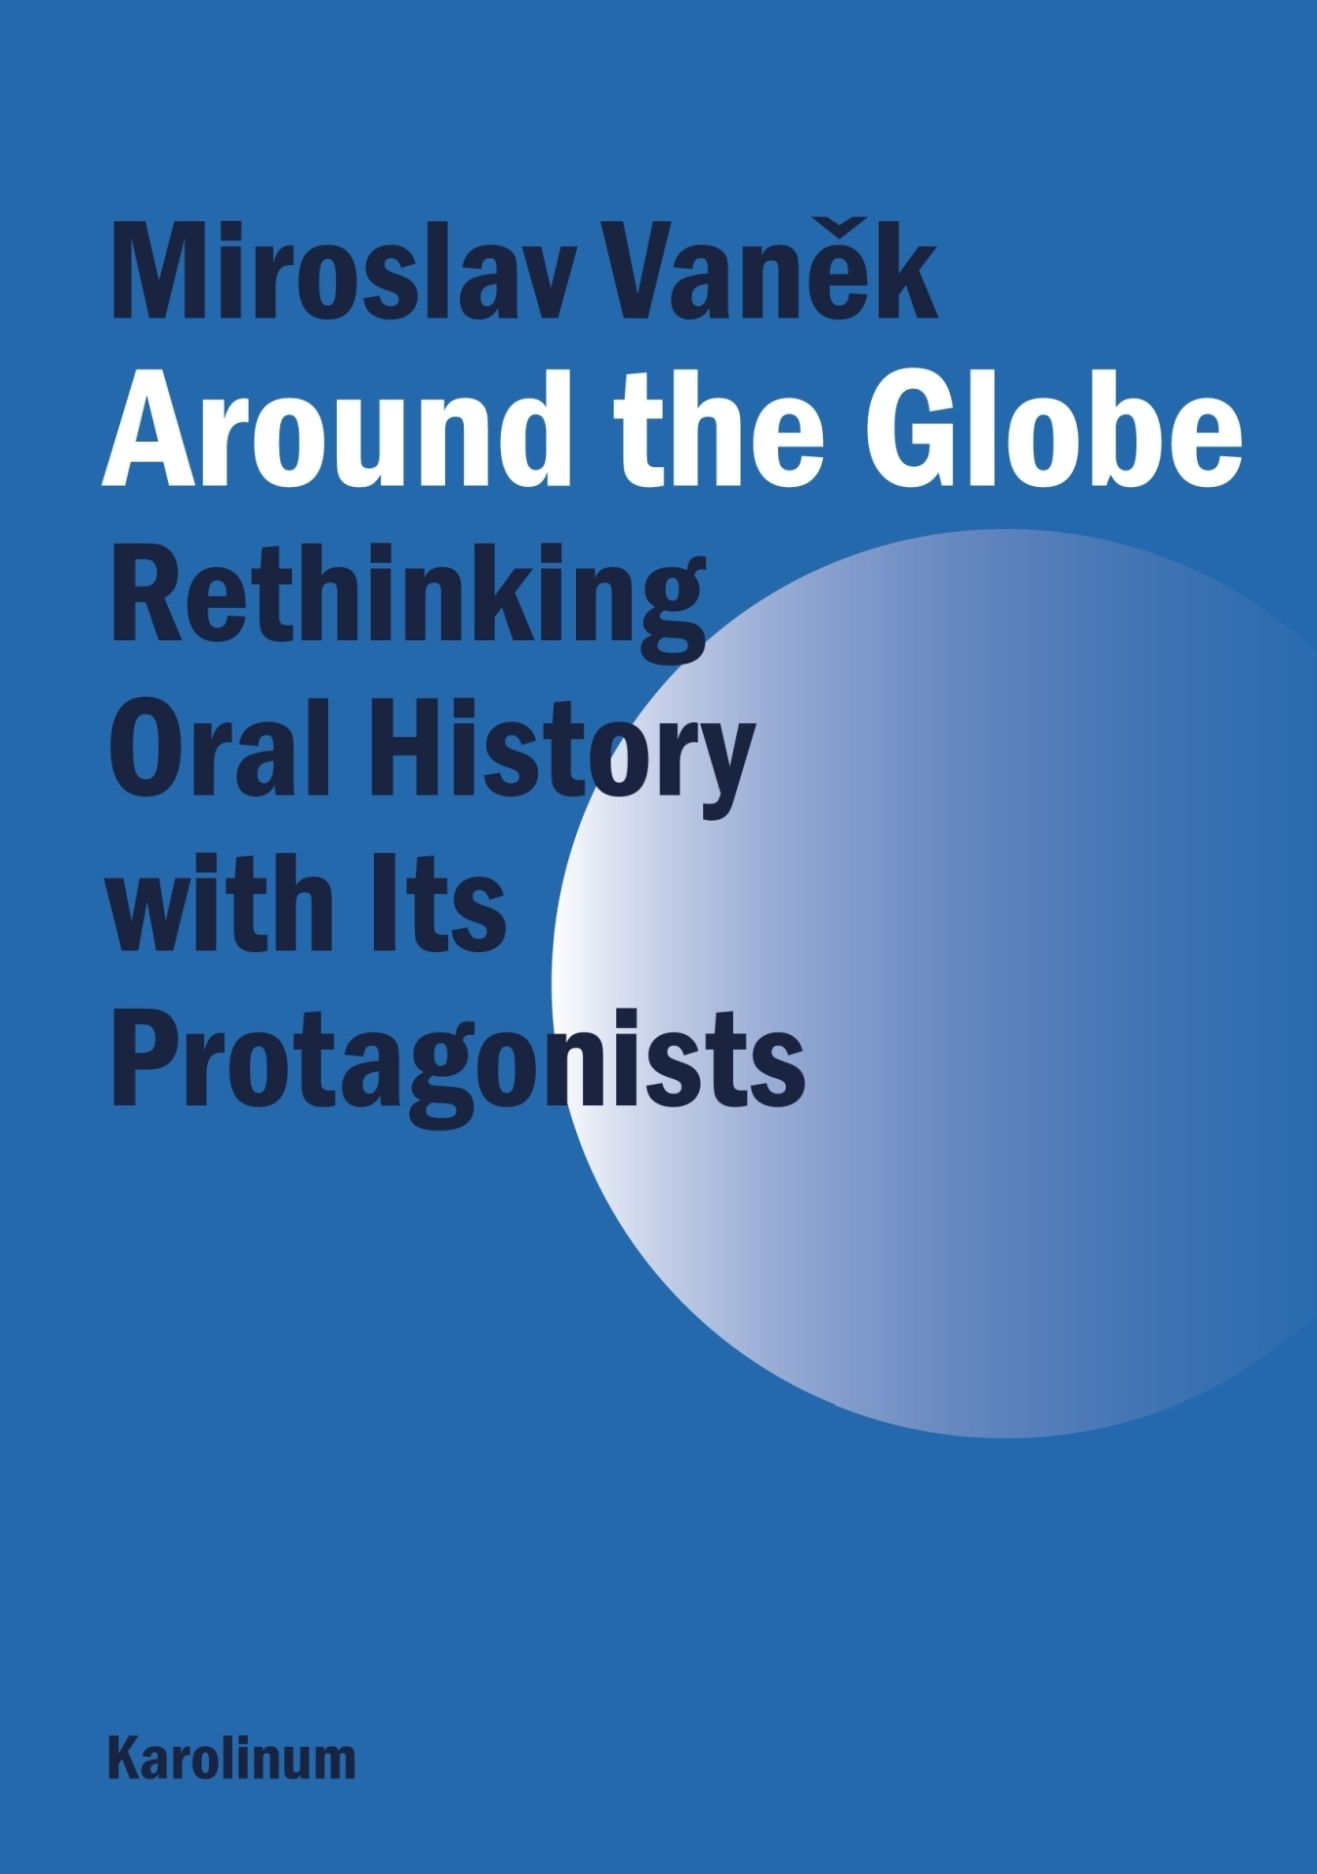 Around the Globe: Rethinking Oral History with Its Protagonists